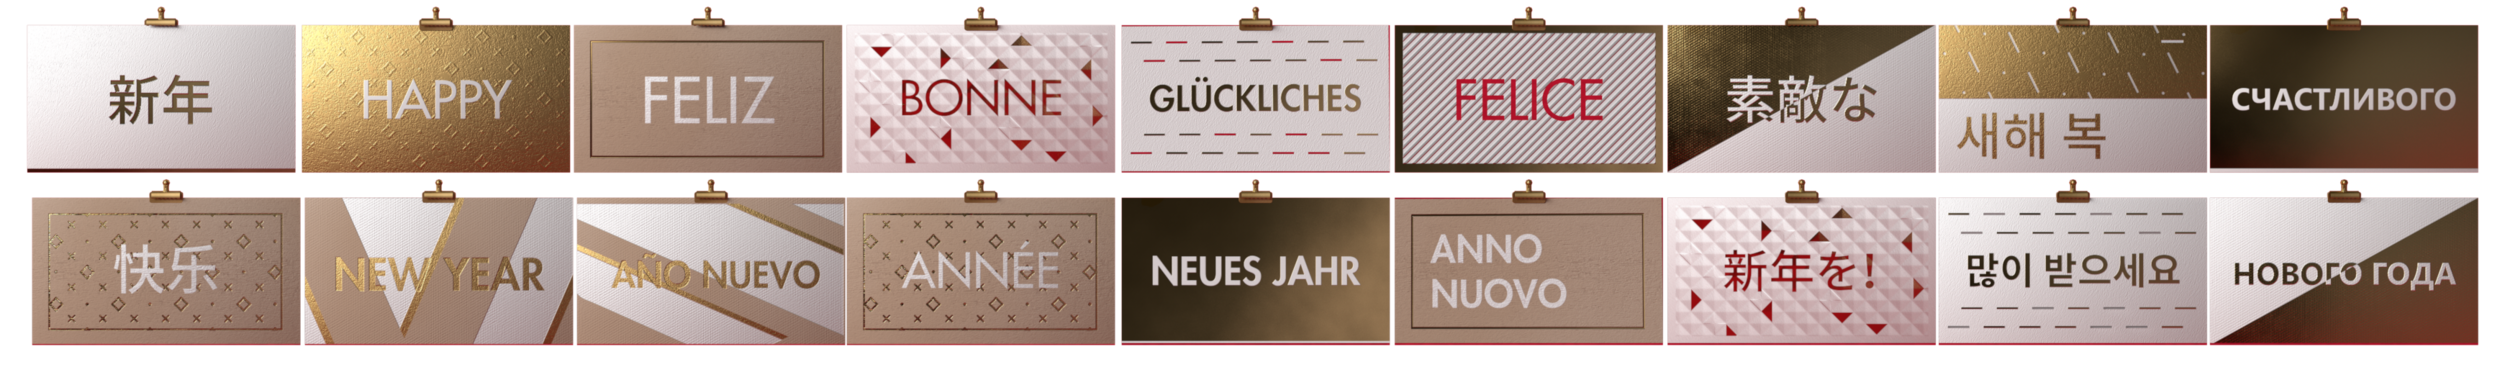 DESIGN MADE FOR THE GREETING CARDS, IN ALL LANGUAGES